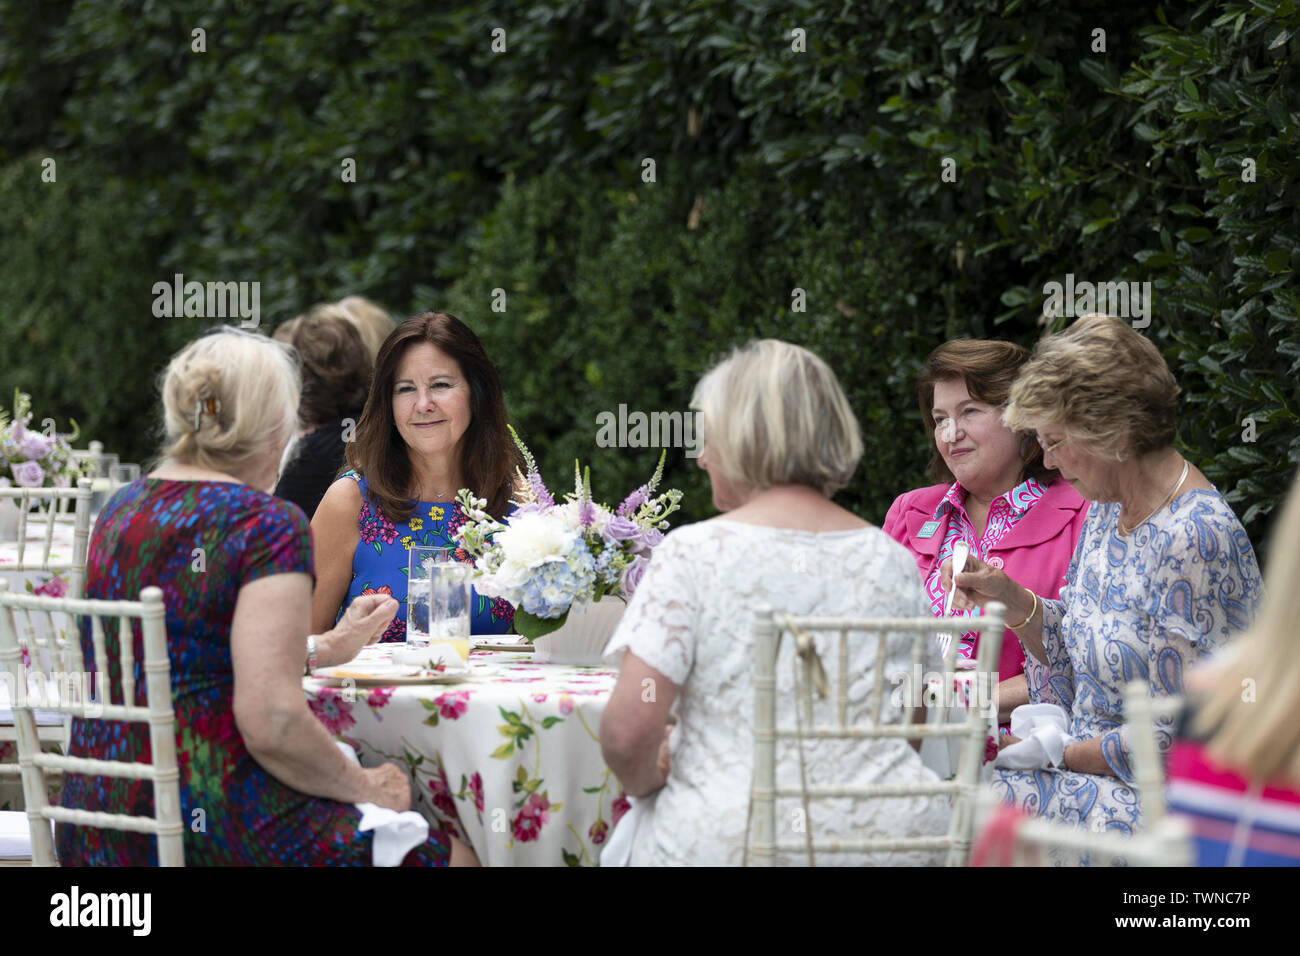 Washington, United States Of America. 20th June, 2019. Second Lady Karen Pence talks with spouses of United States Senators during a reception at the Vice PresidentÕs Residence Thursday, June 20, 2019, in Washington, DC People: Second Lady Karen Pence Credit: Storms Media Group/Alamy Live News Stock Photo